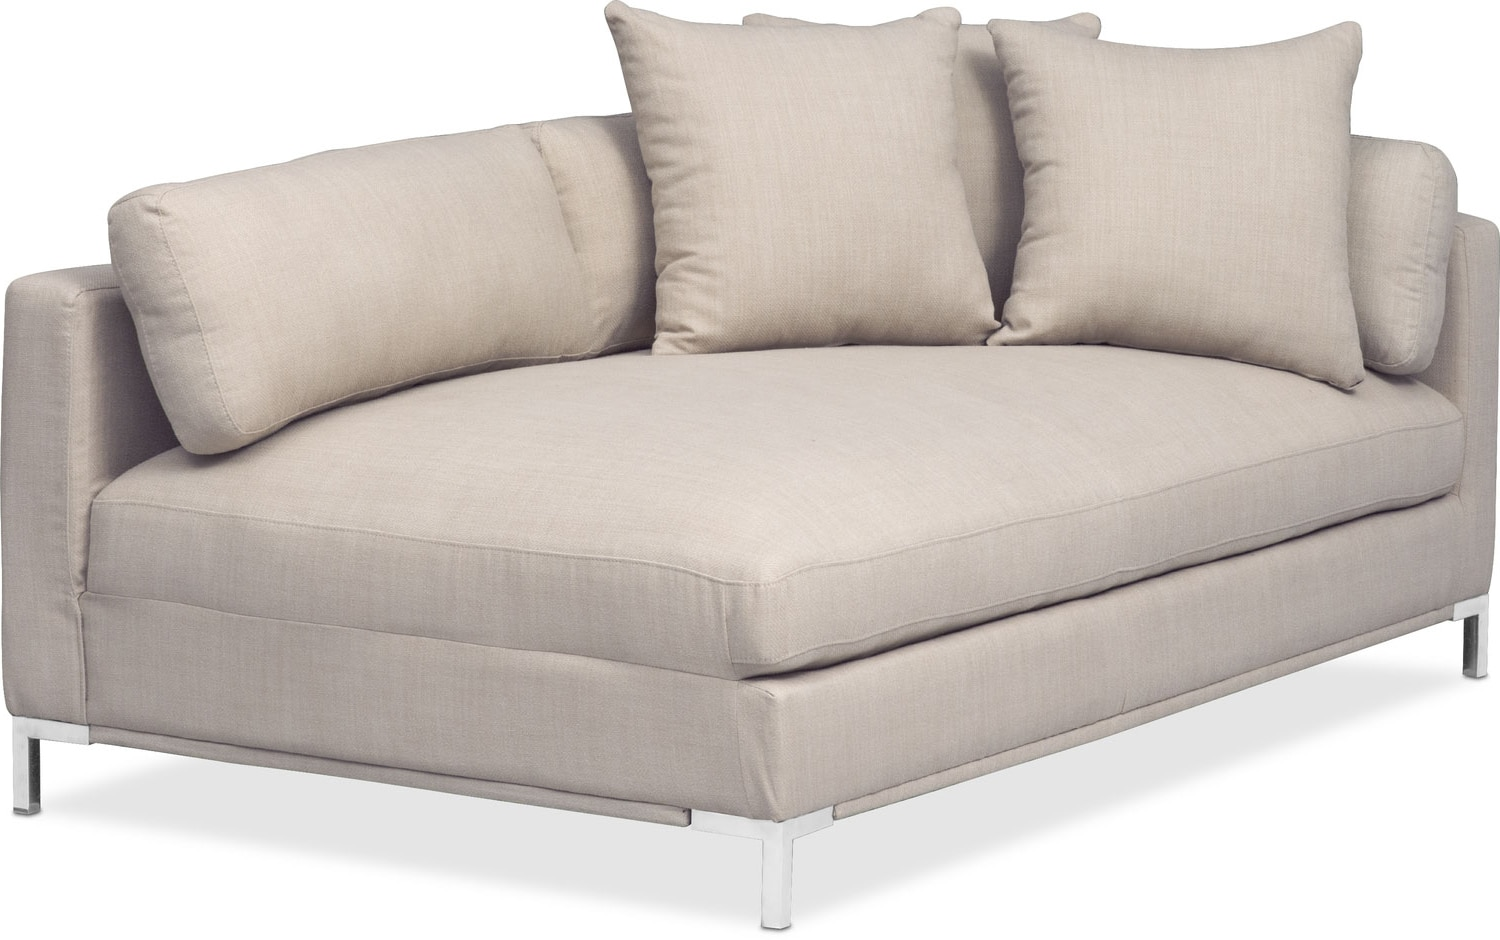 Moda Right-Facing Chaise - Ivory